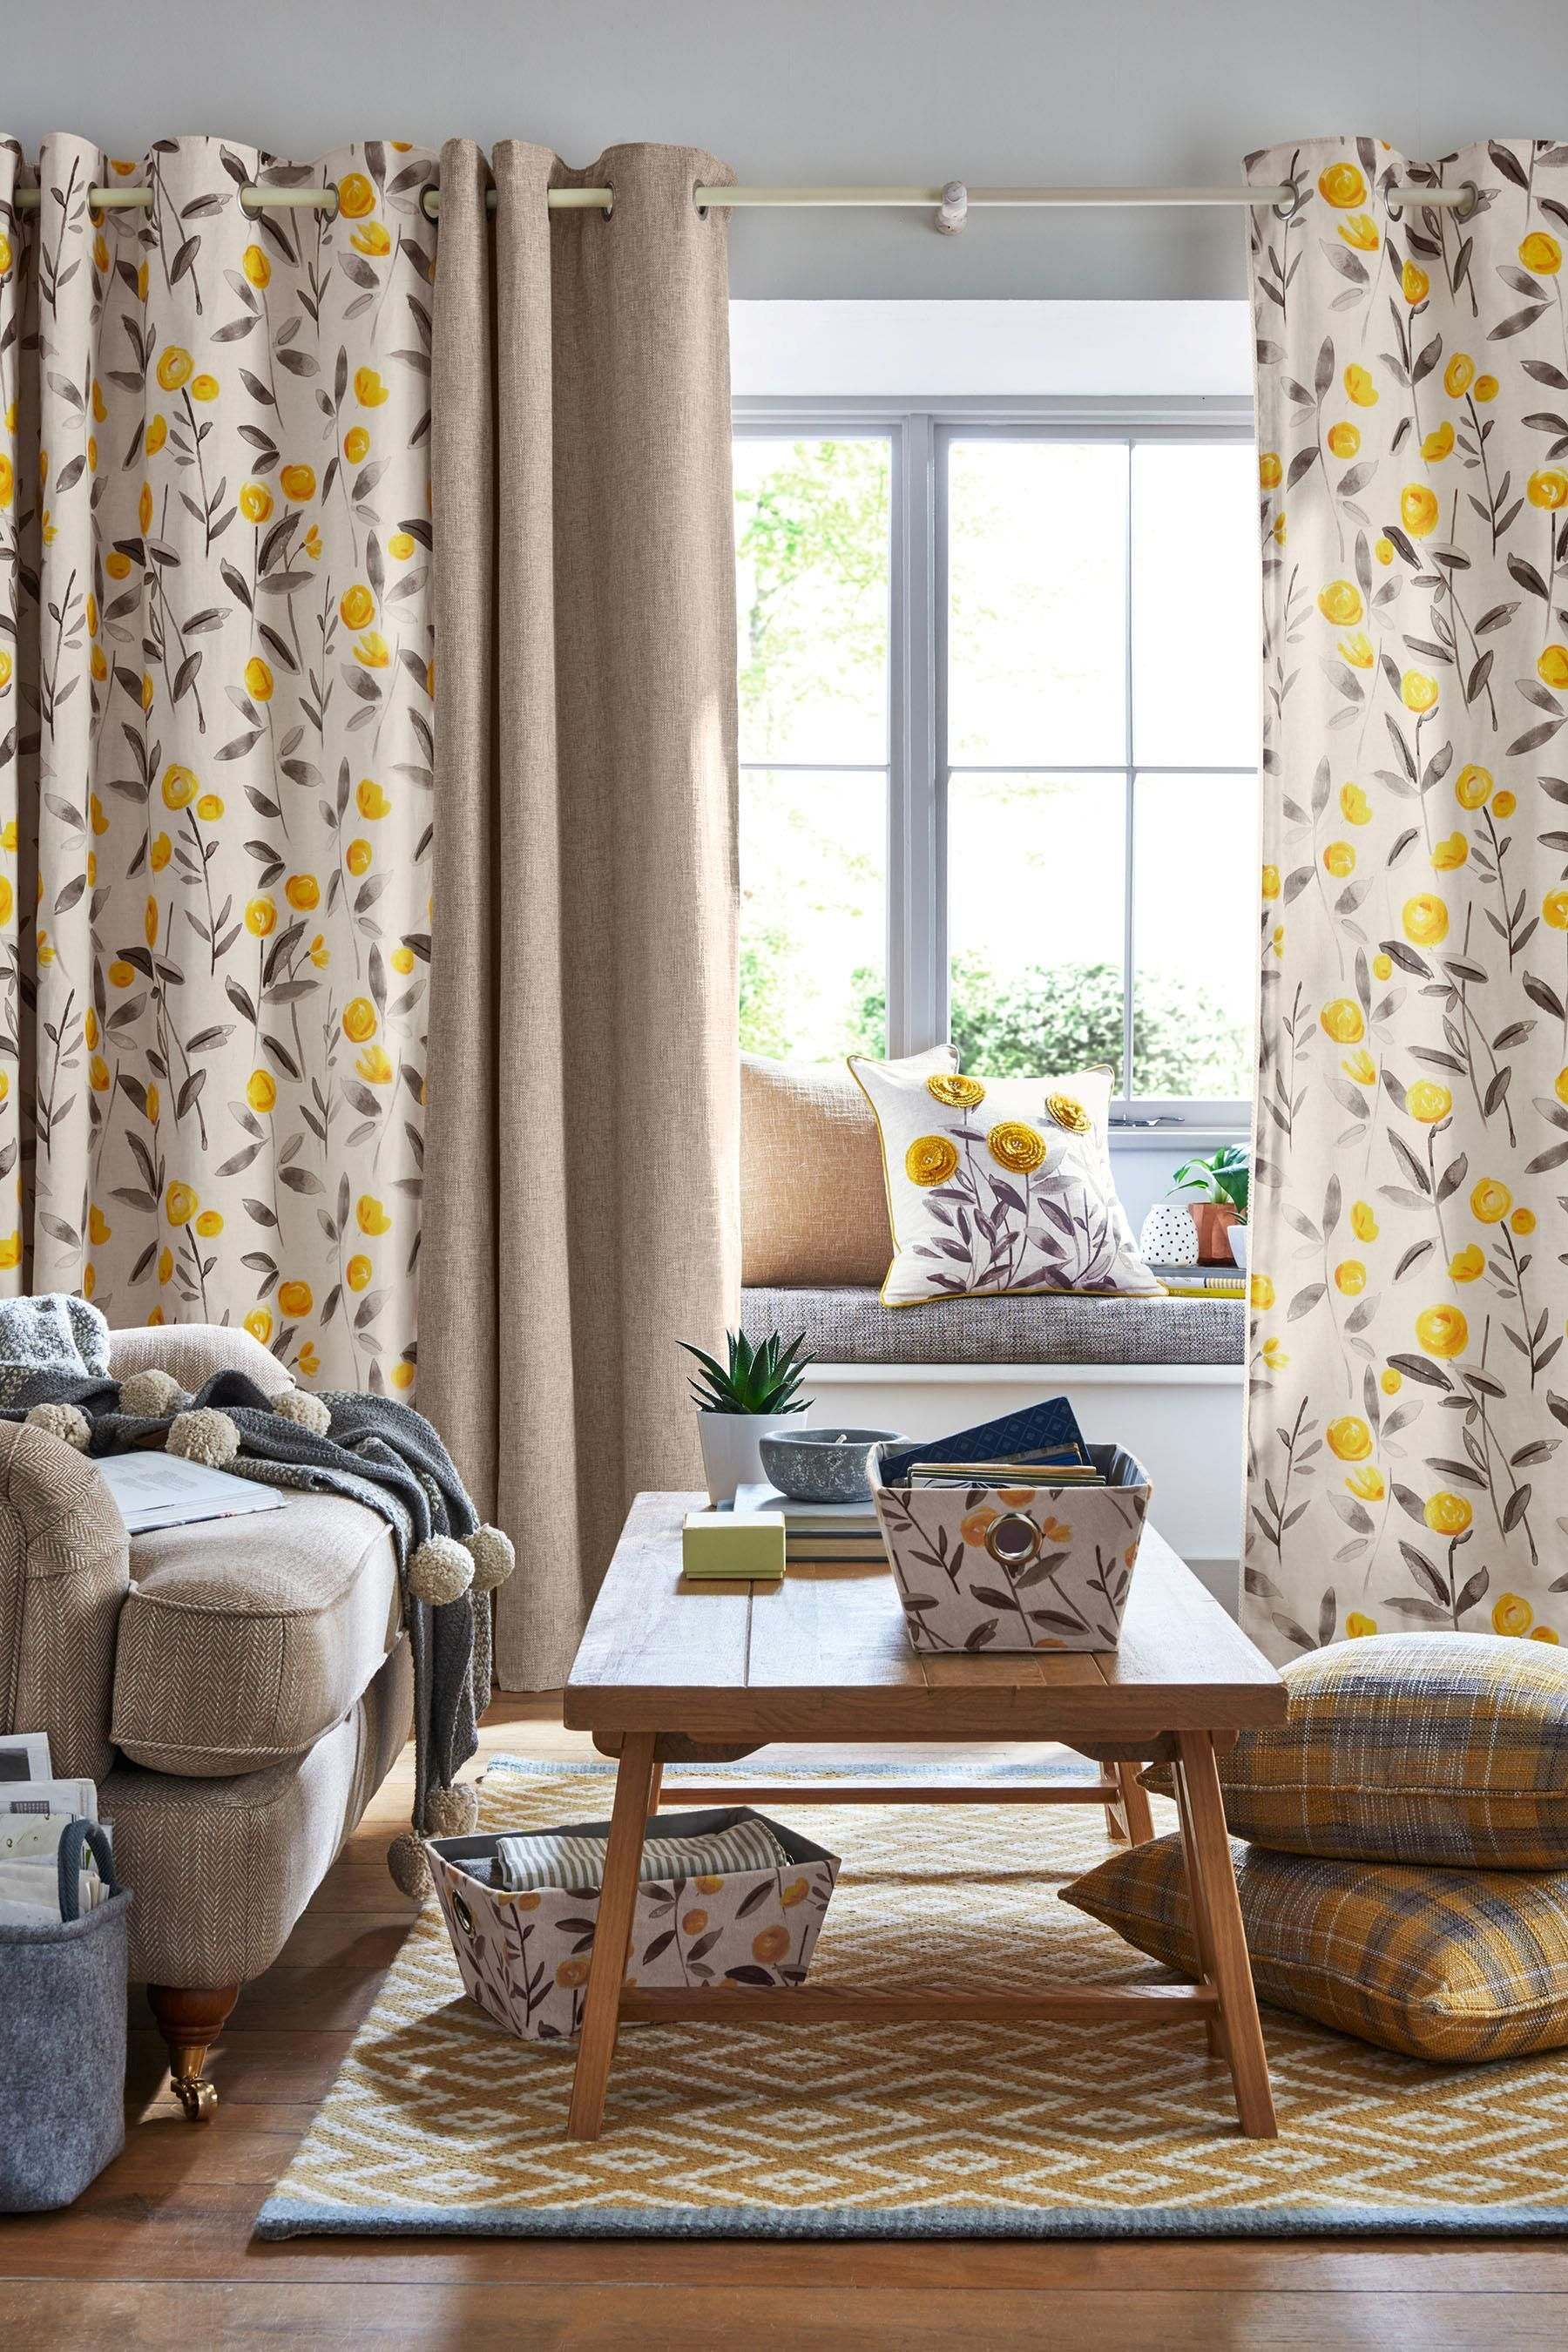 Buy Ochre Eden Floral Print Eyelet Curtains from the Next ...